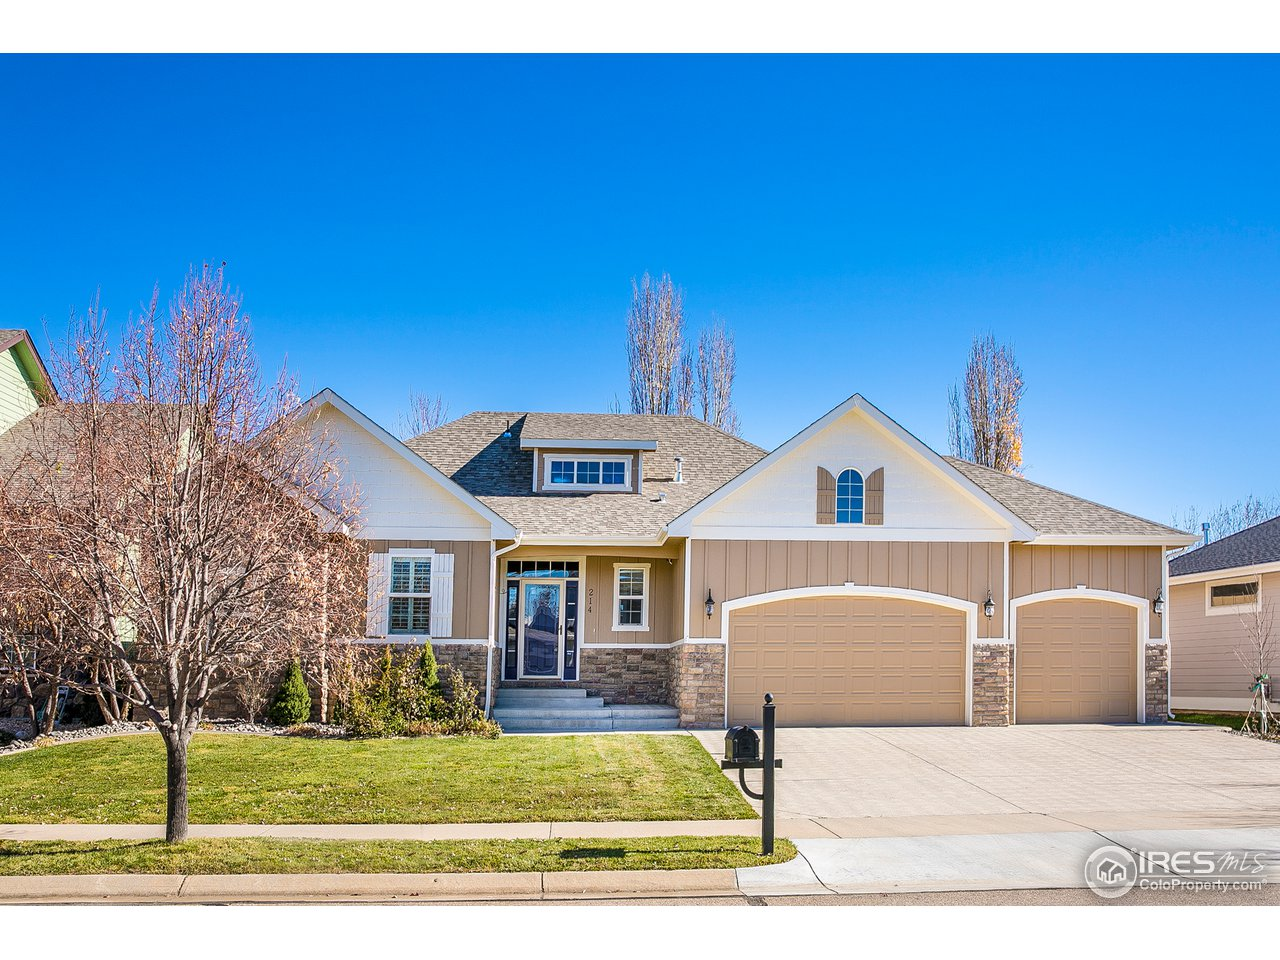 214 N 53RD AVE CT, GREELEY, CO 80634